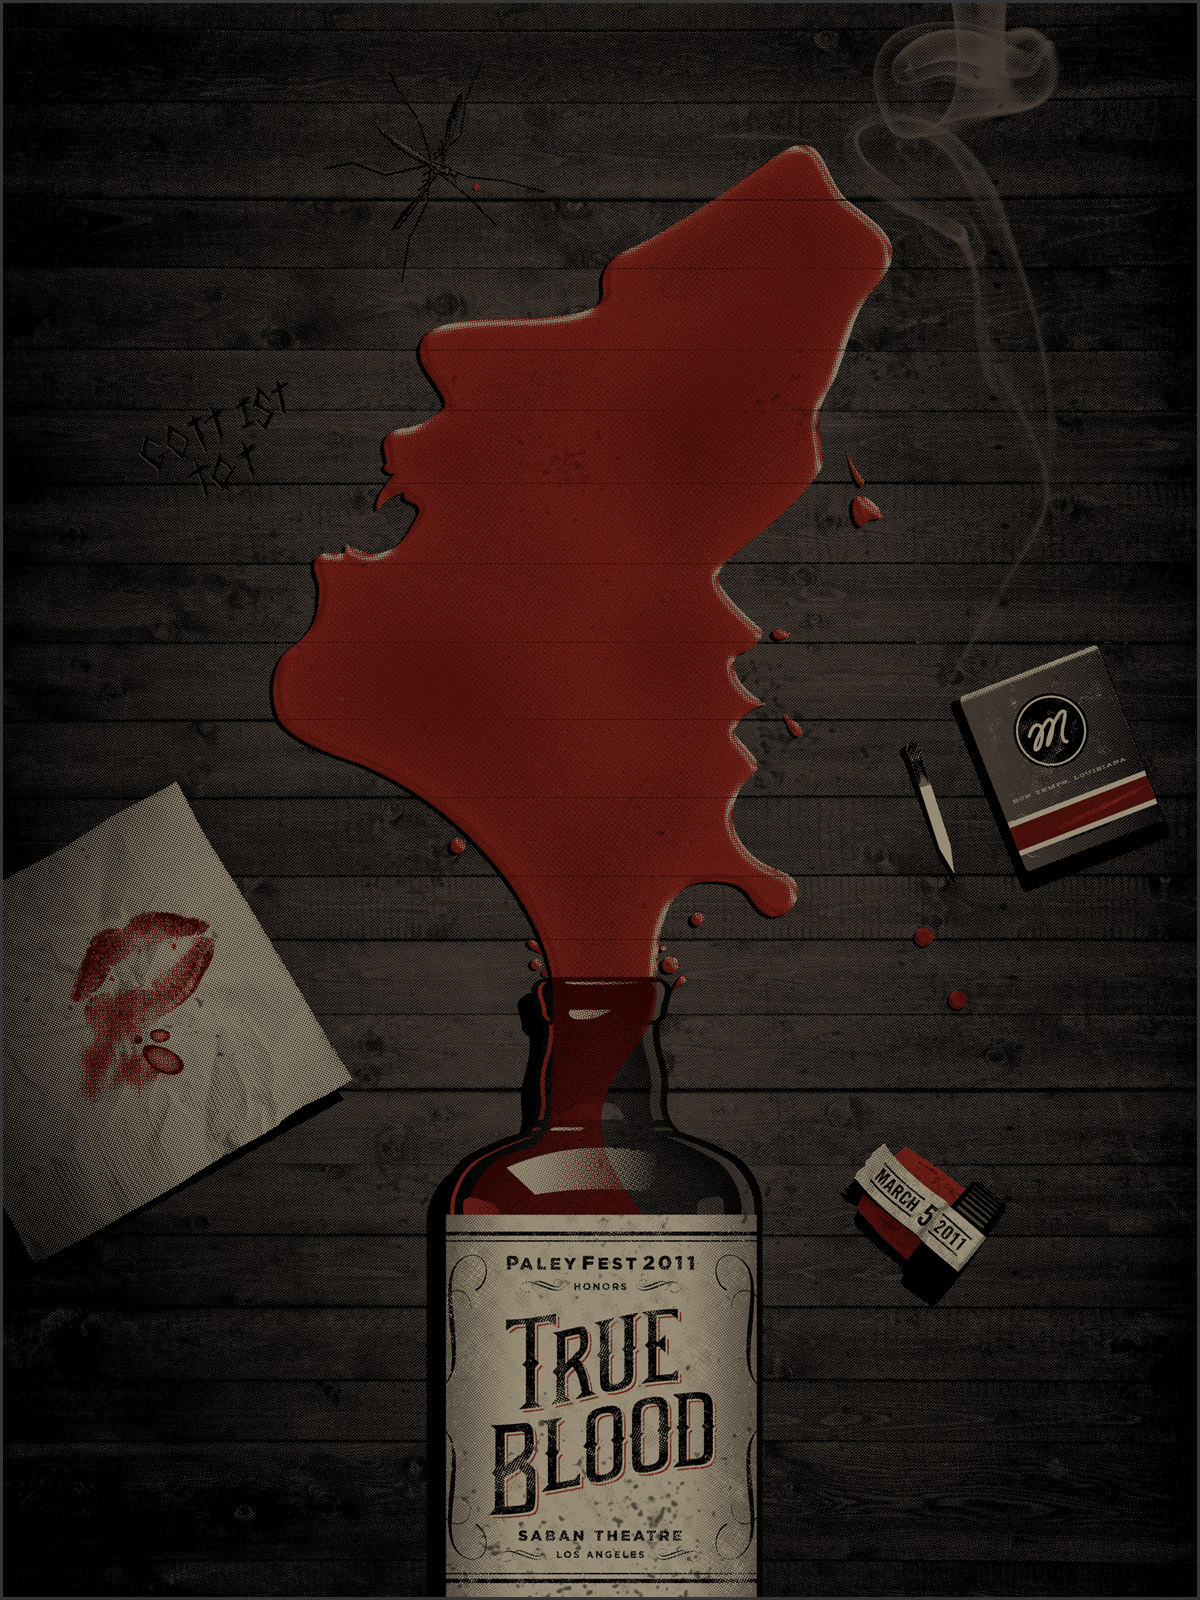 True Blood Poster by DKNG